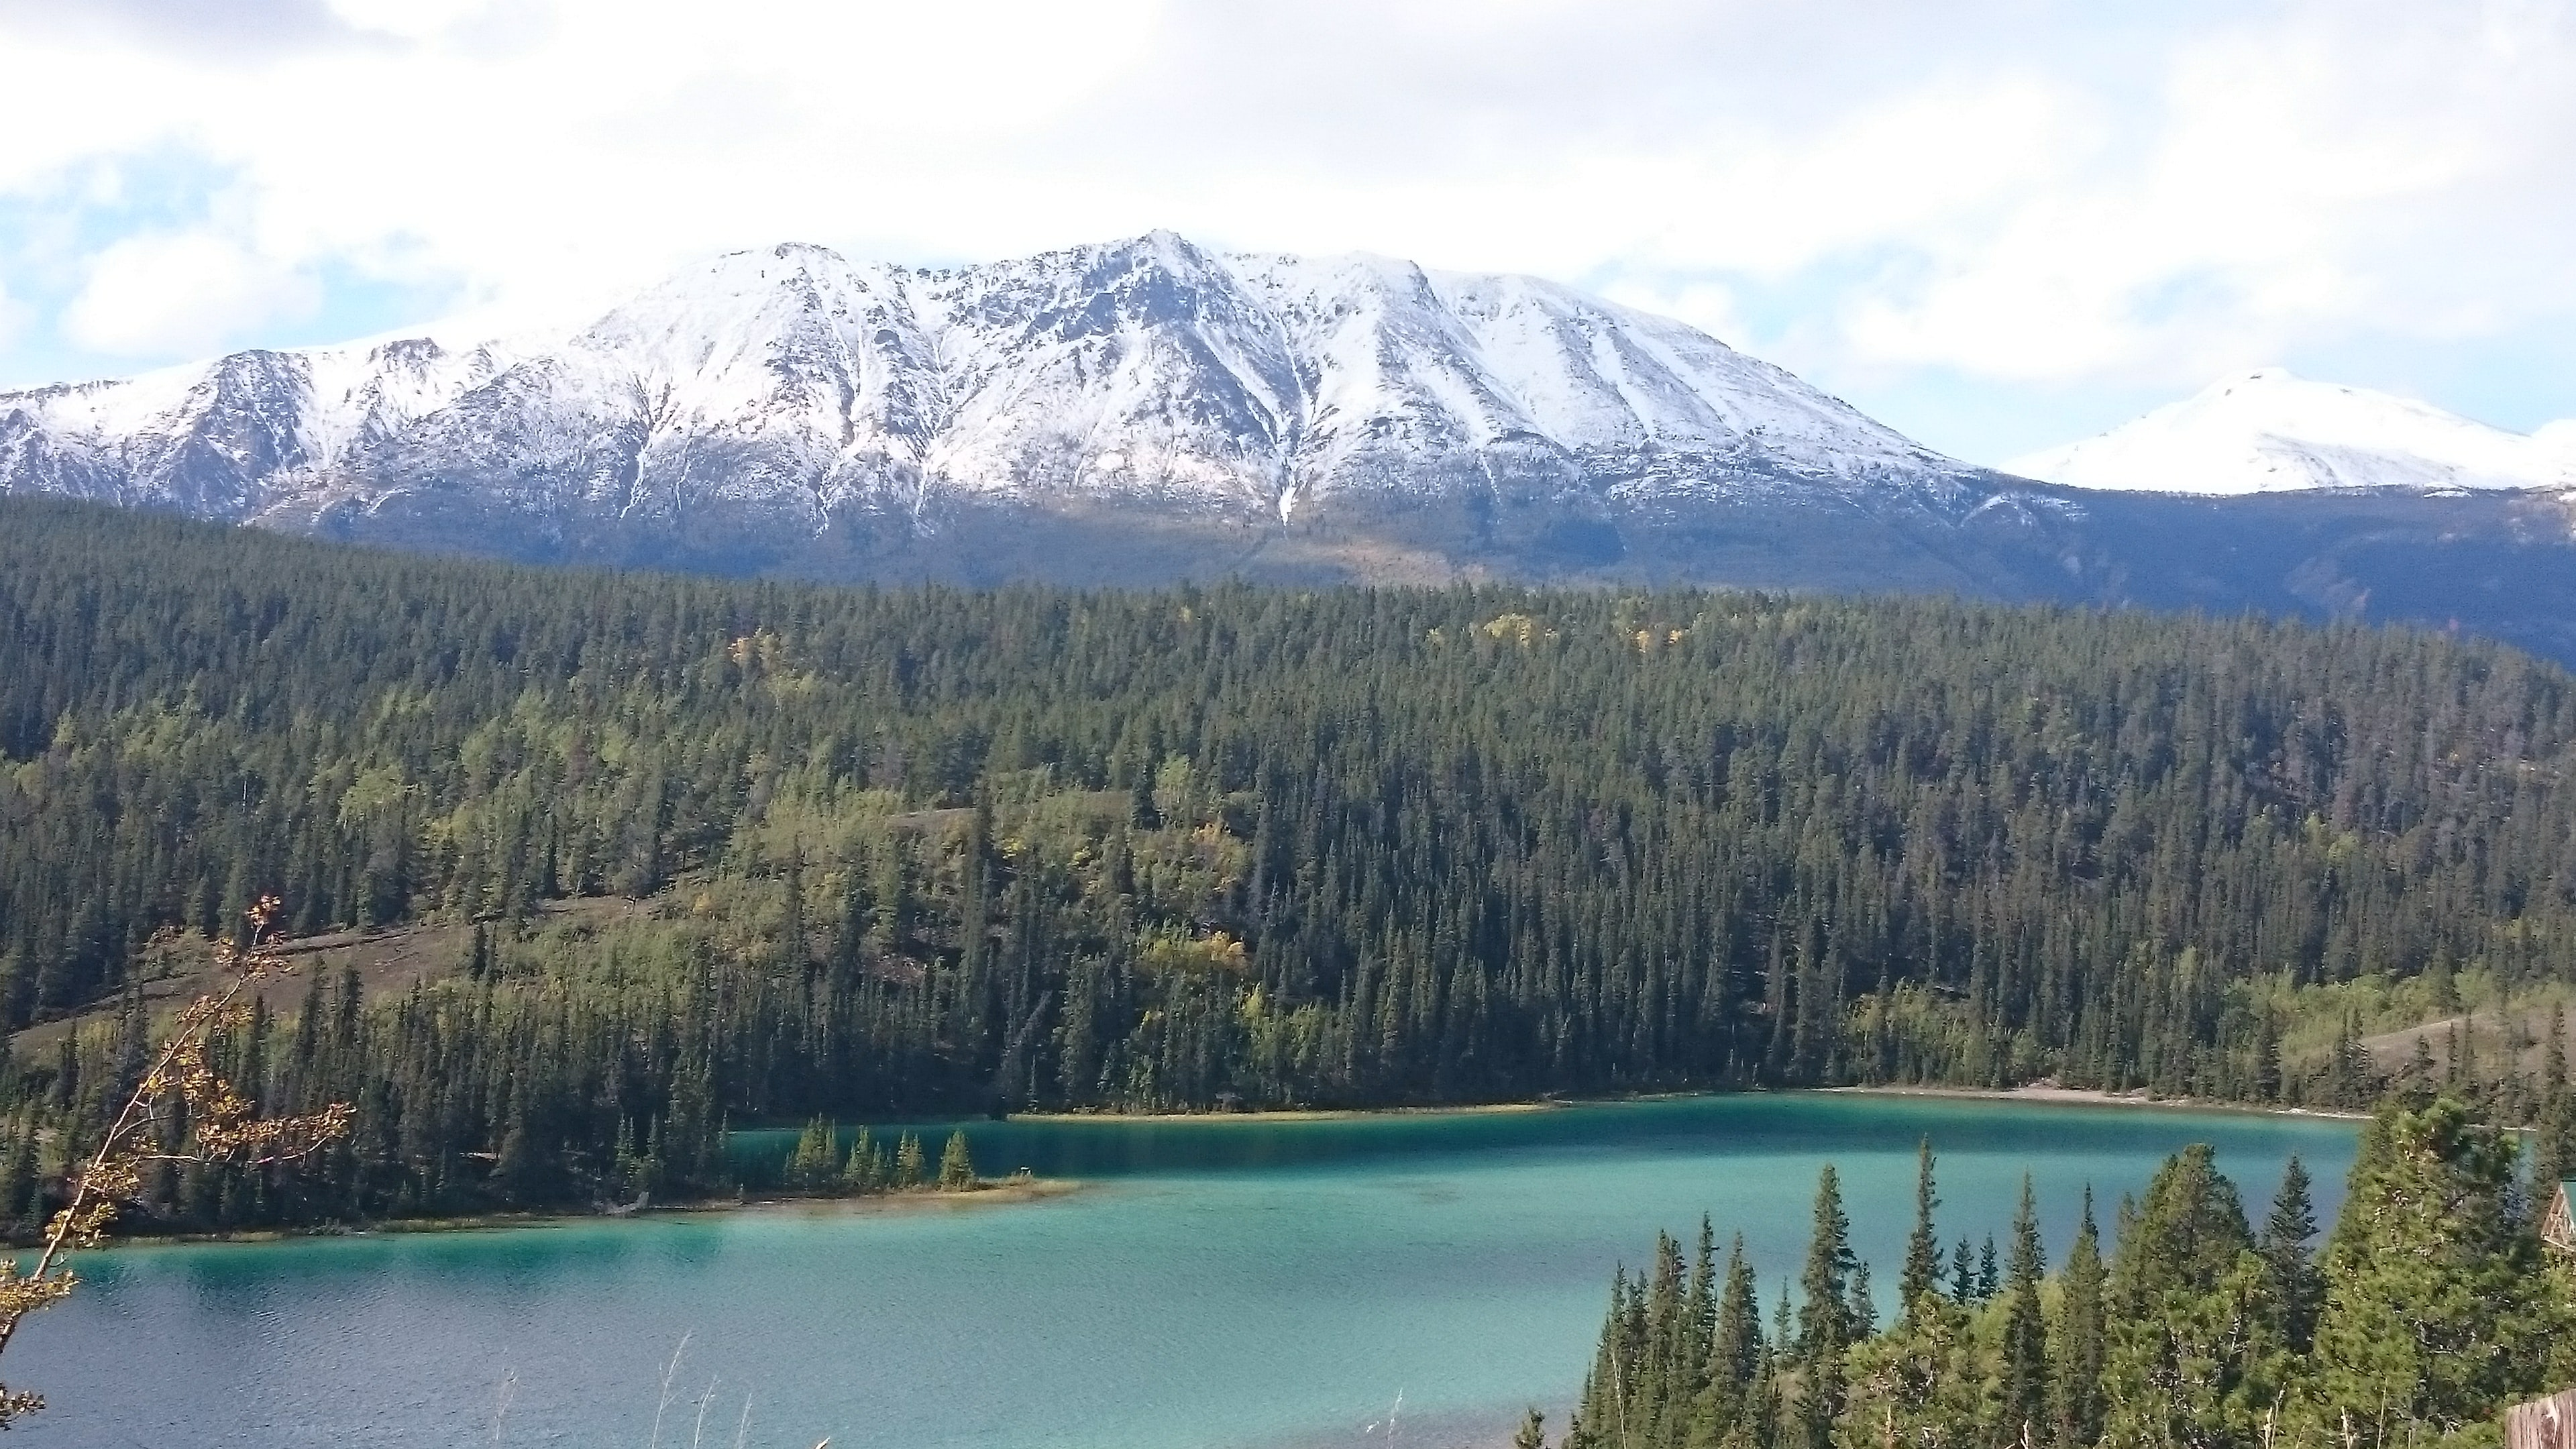 Snowy table-top mountain towering over Emerald Lake in Yukon